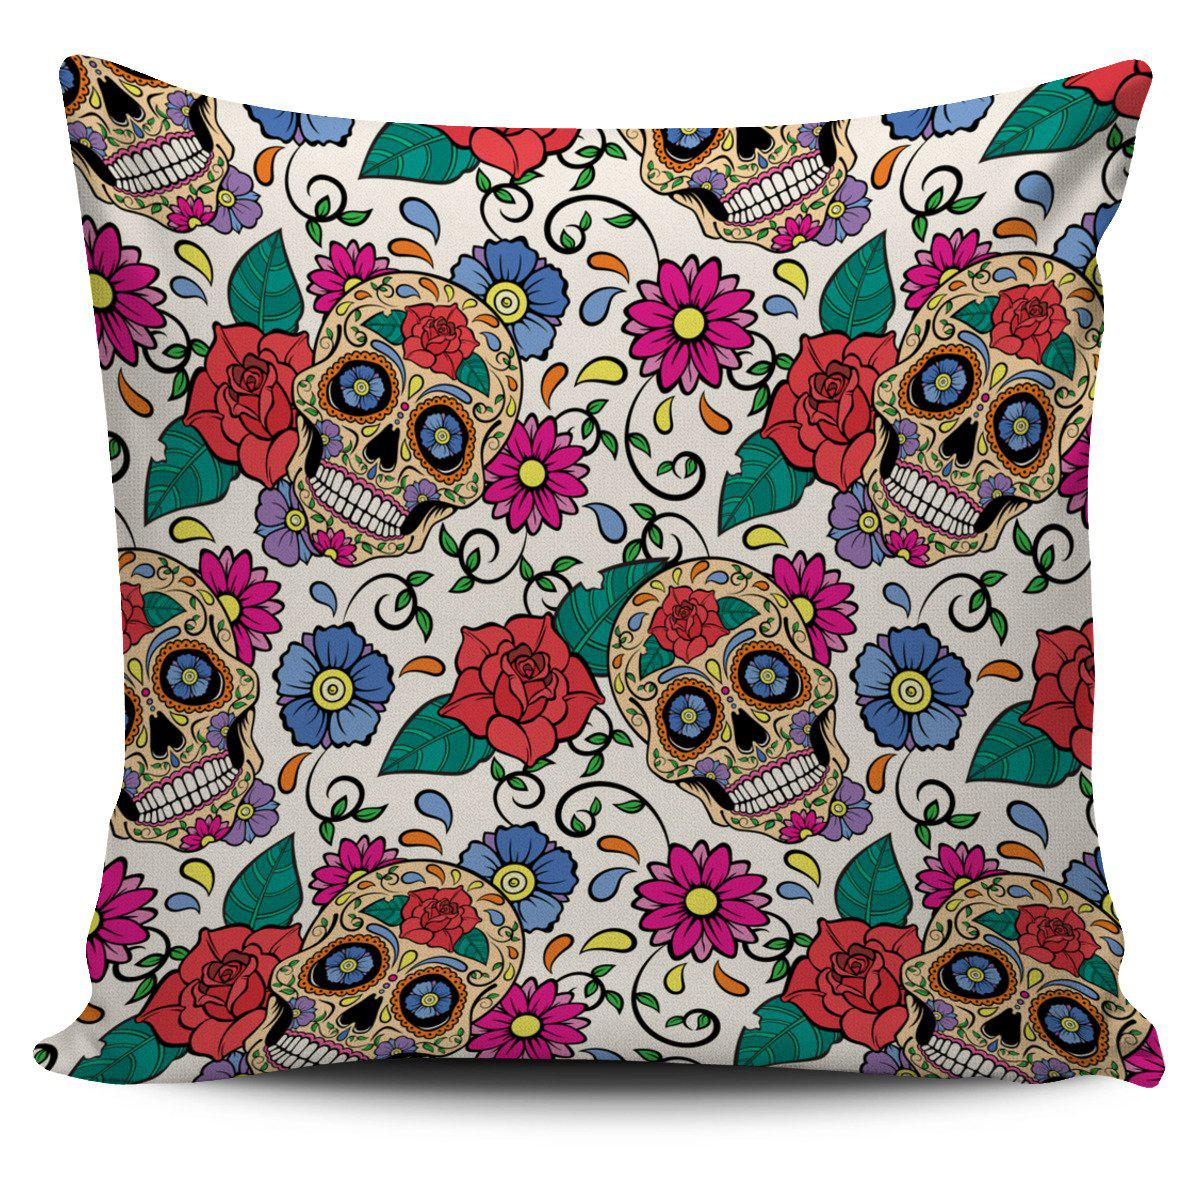 Shopeholic:Green White Skull Pillow Cover